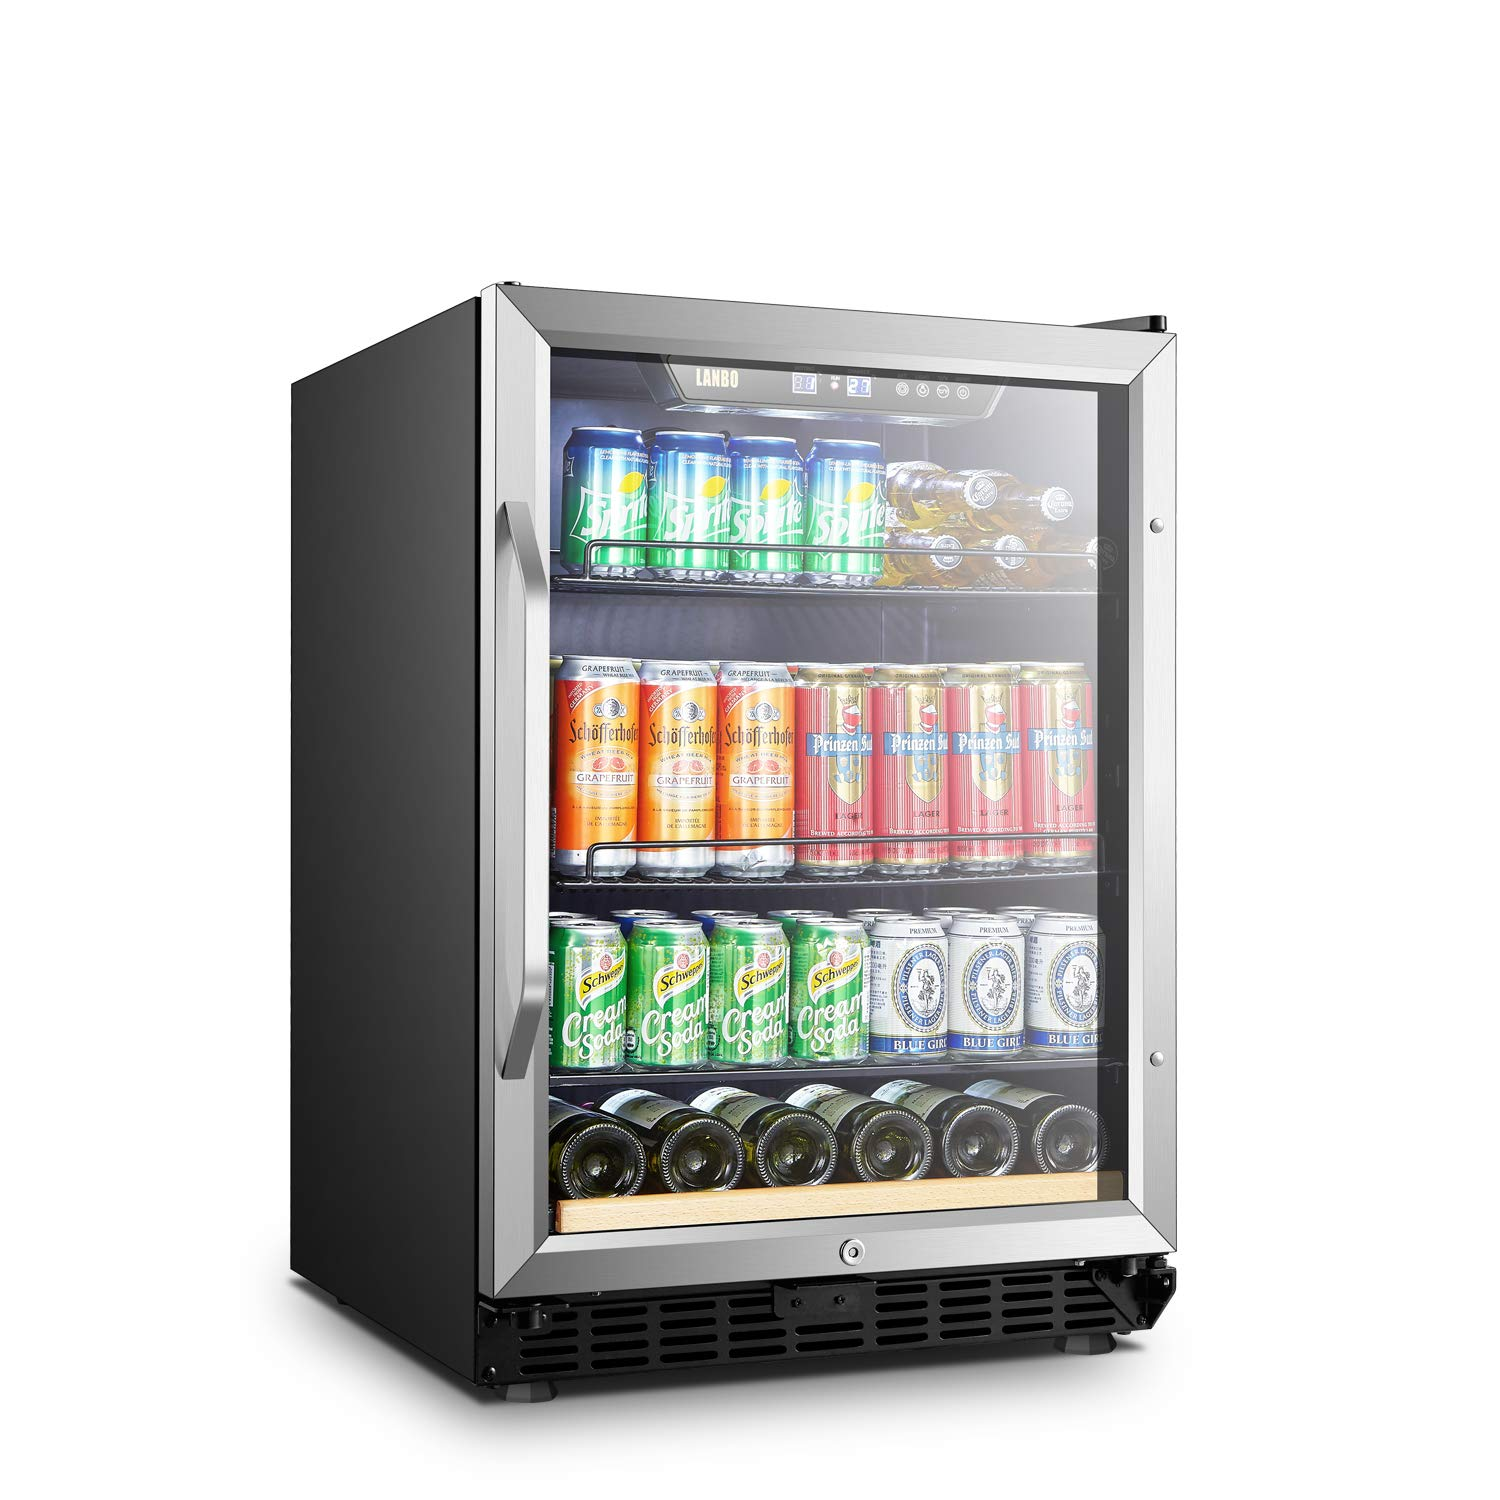 LANBO Beverage Cooler Refrigerator, 110 Cans 6 Bottles Built-in Compressor Drink Fridge with Double-Paned Tempered Glass Door by Lanbo (Image #1)